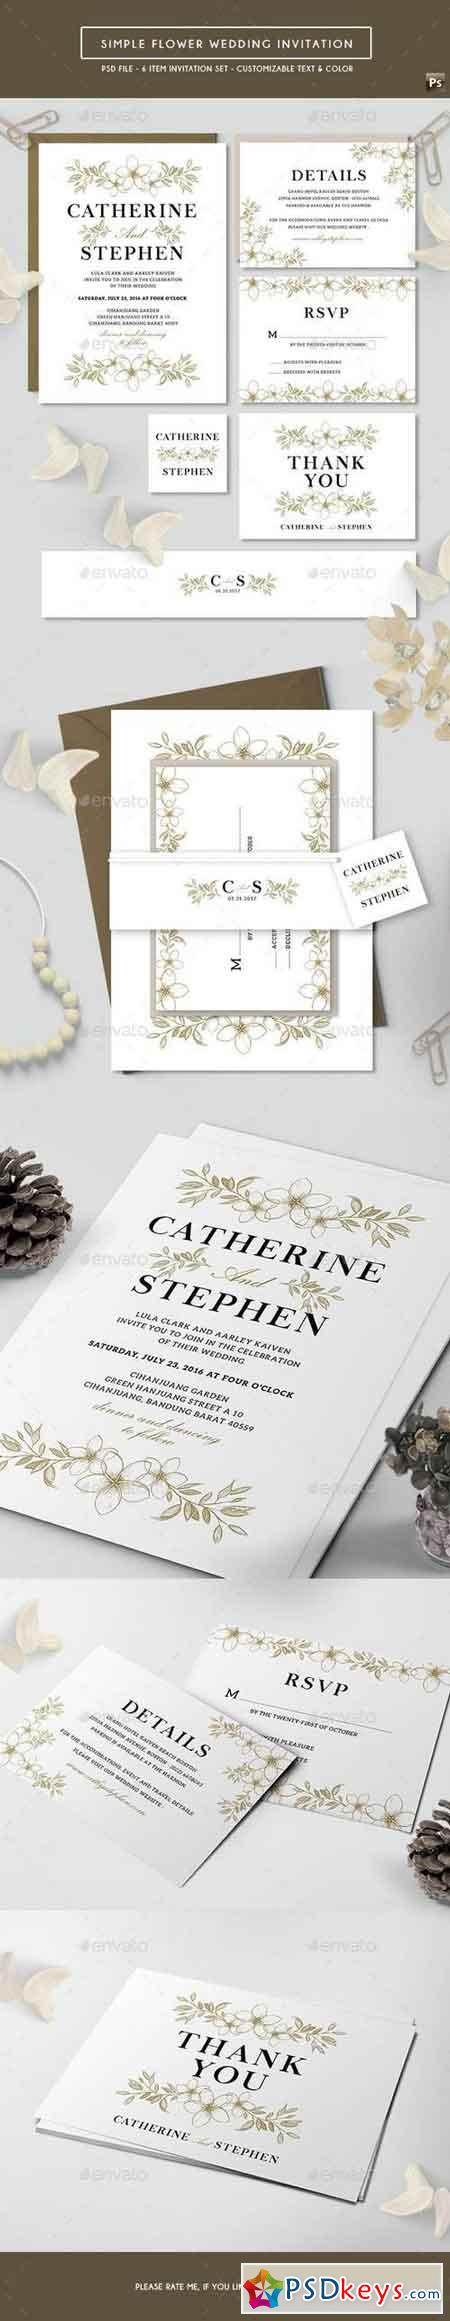 Simple Flower Wedding Invitation 17743313